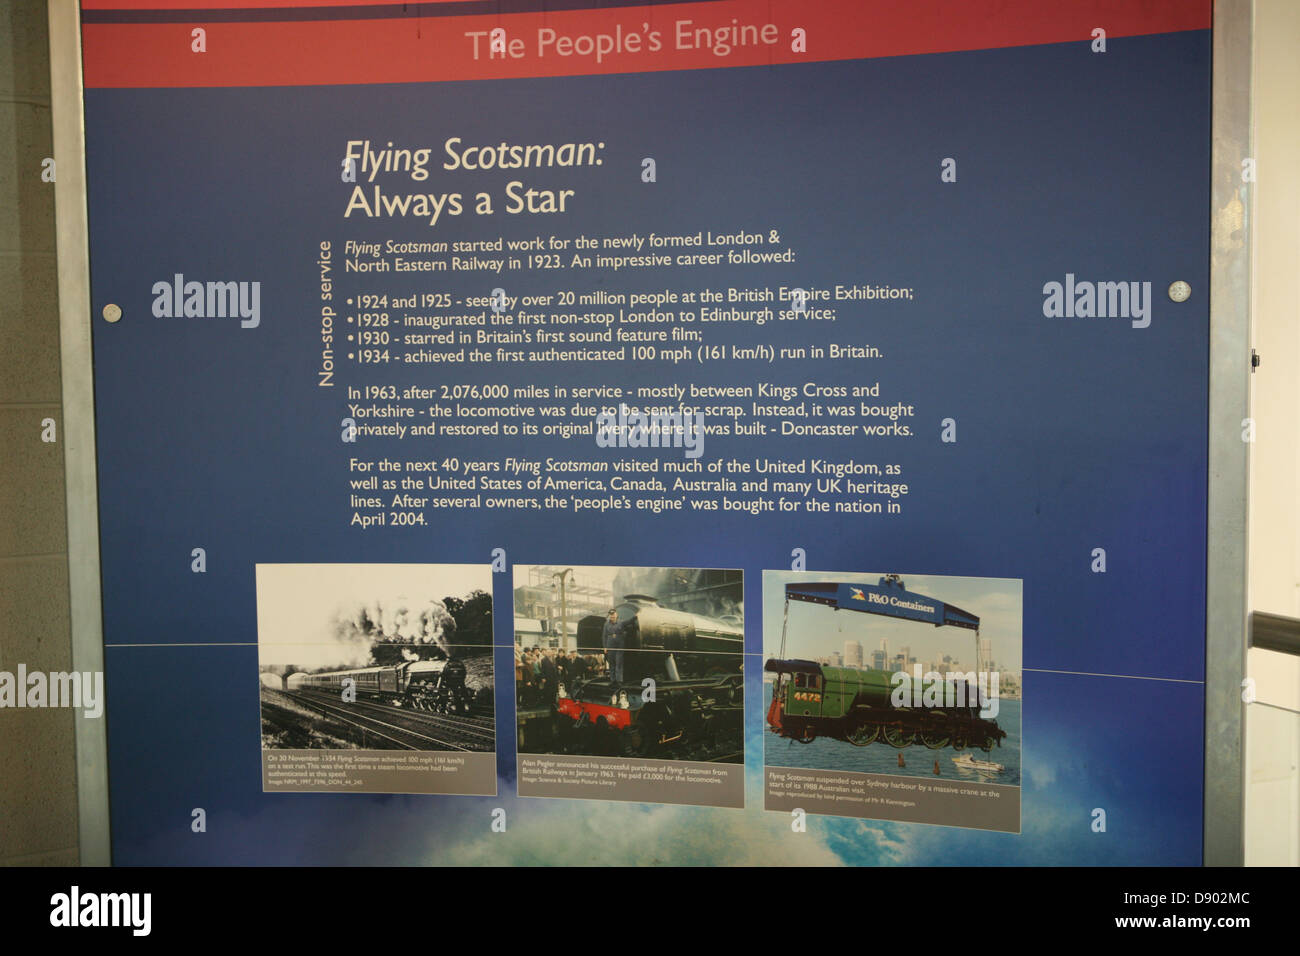 Flying Scotsman history placard in National Rail Museum York - Stock Image